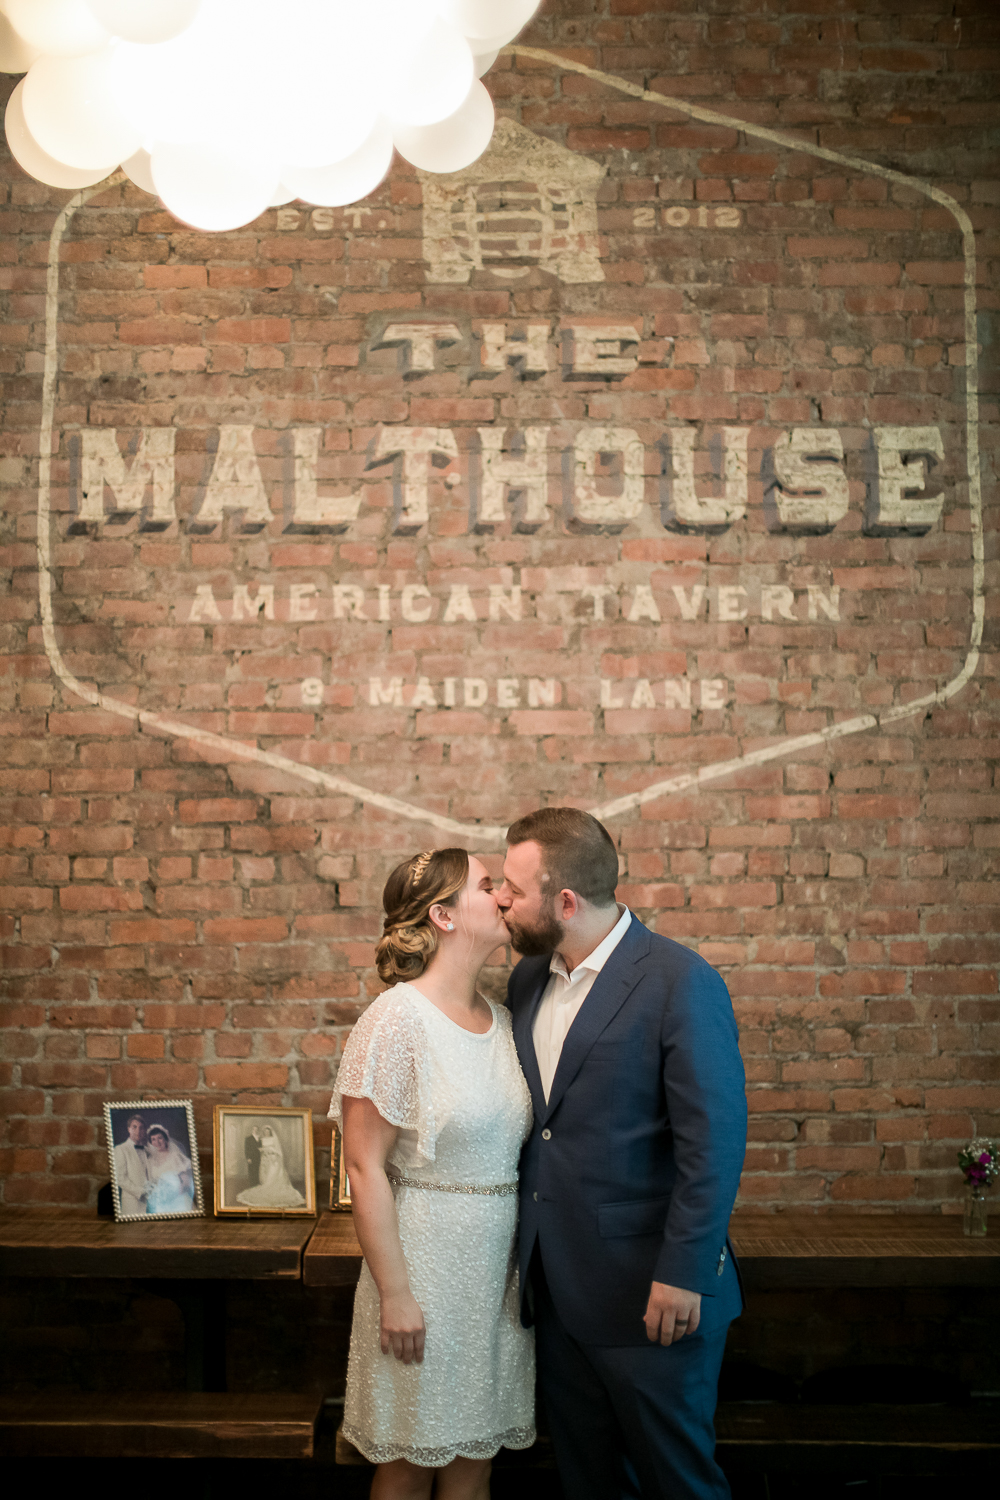 Bride and groom kissing in front of a brick wall at an Intimate Wedding at the Malthouse in Manhattan, New York City.